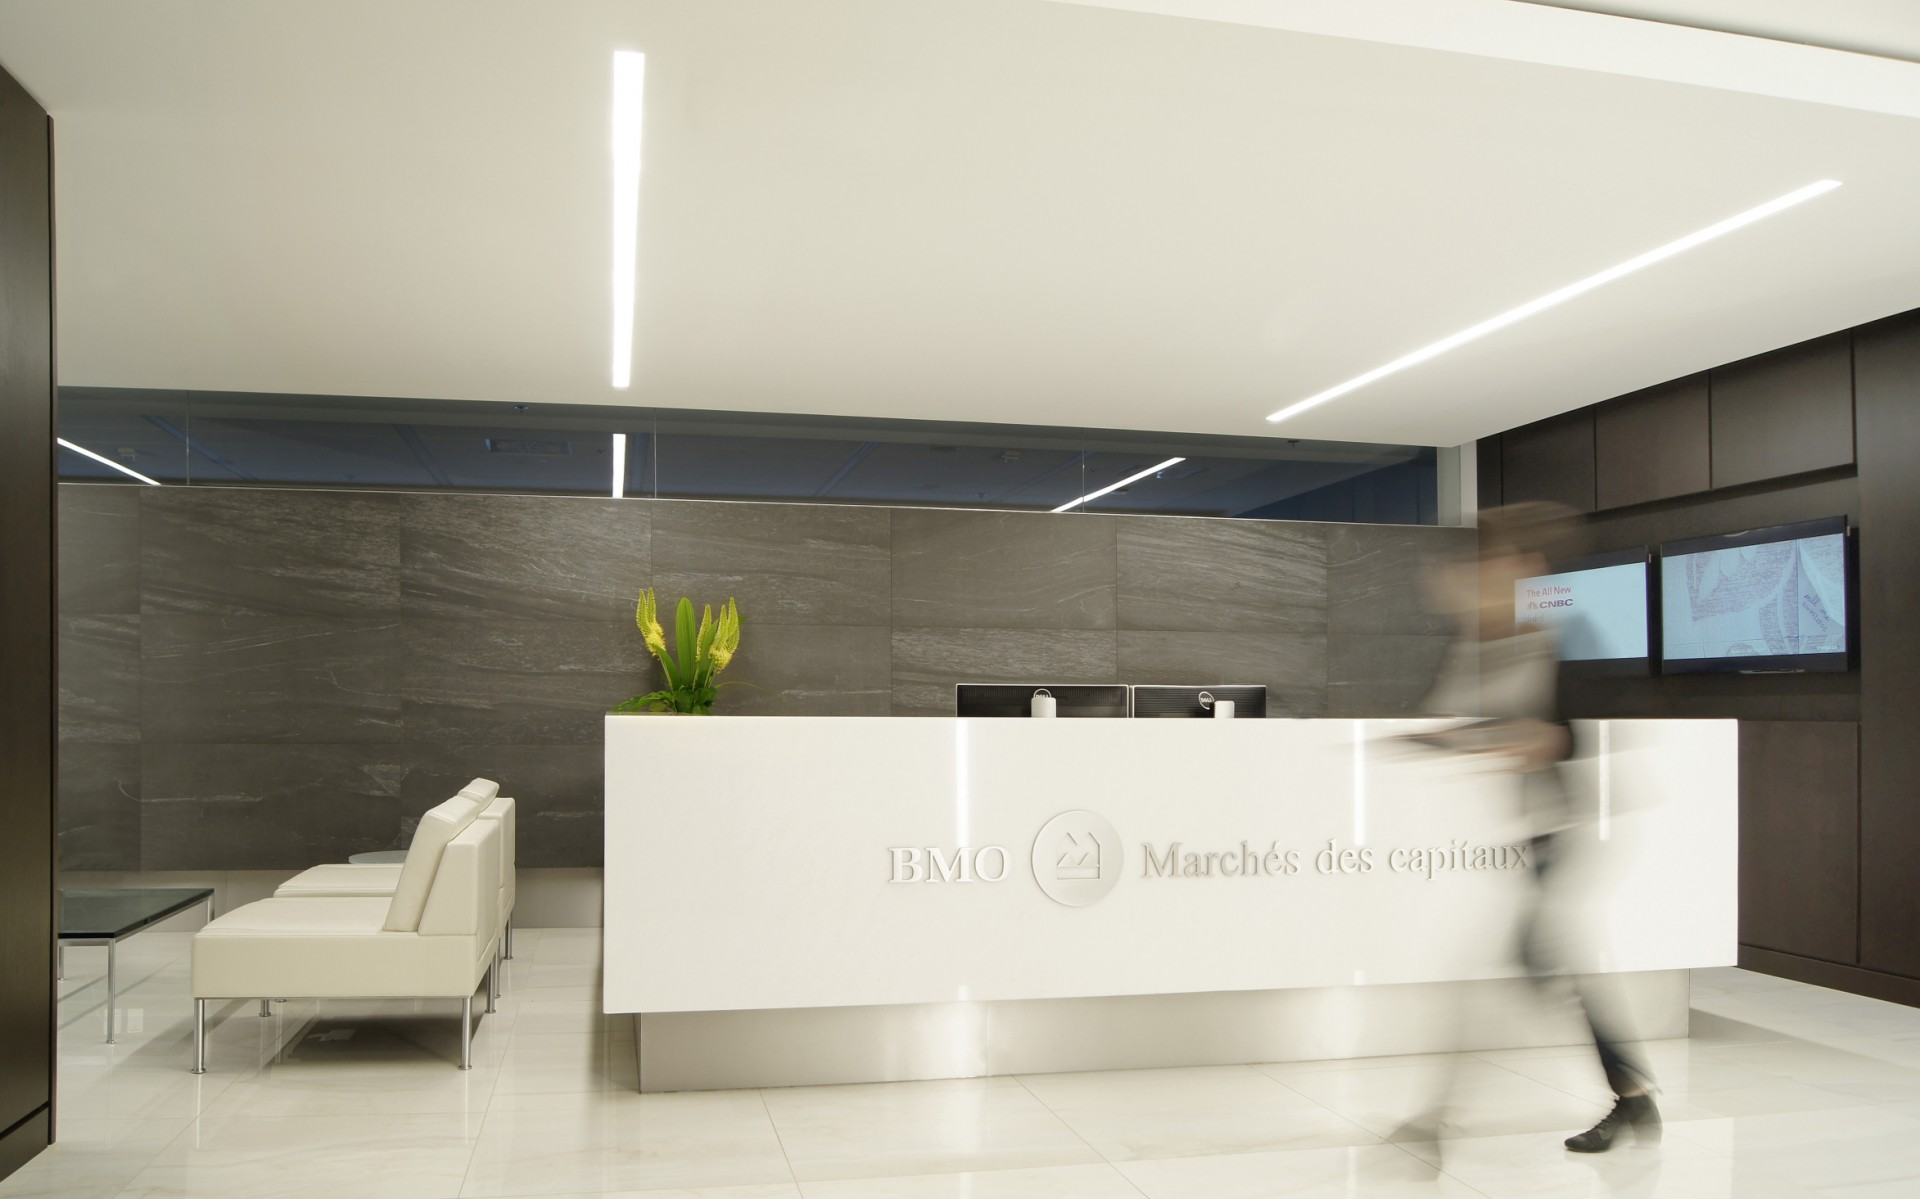 As part of a renovation of its Montreal headquarters, BMO Capital Markets wanted a flexible, efficient new lighting concept.